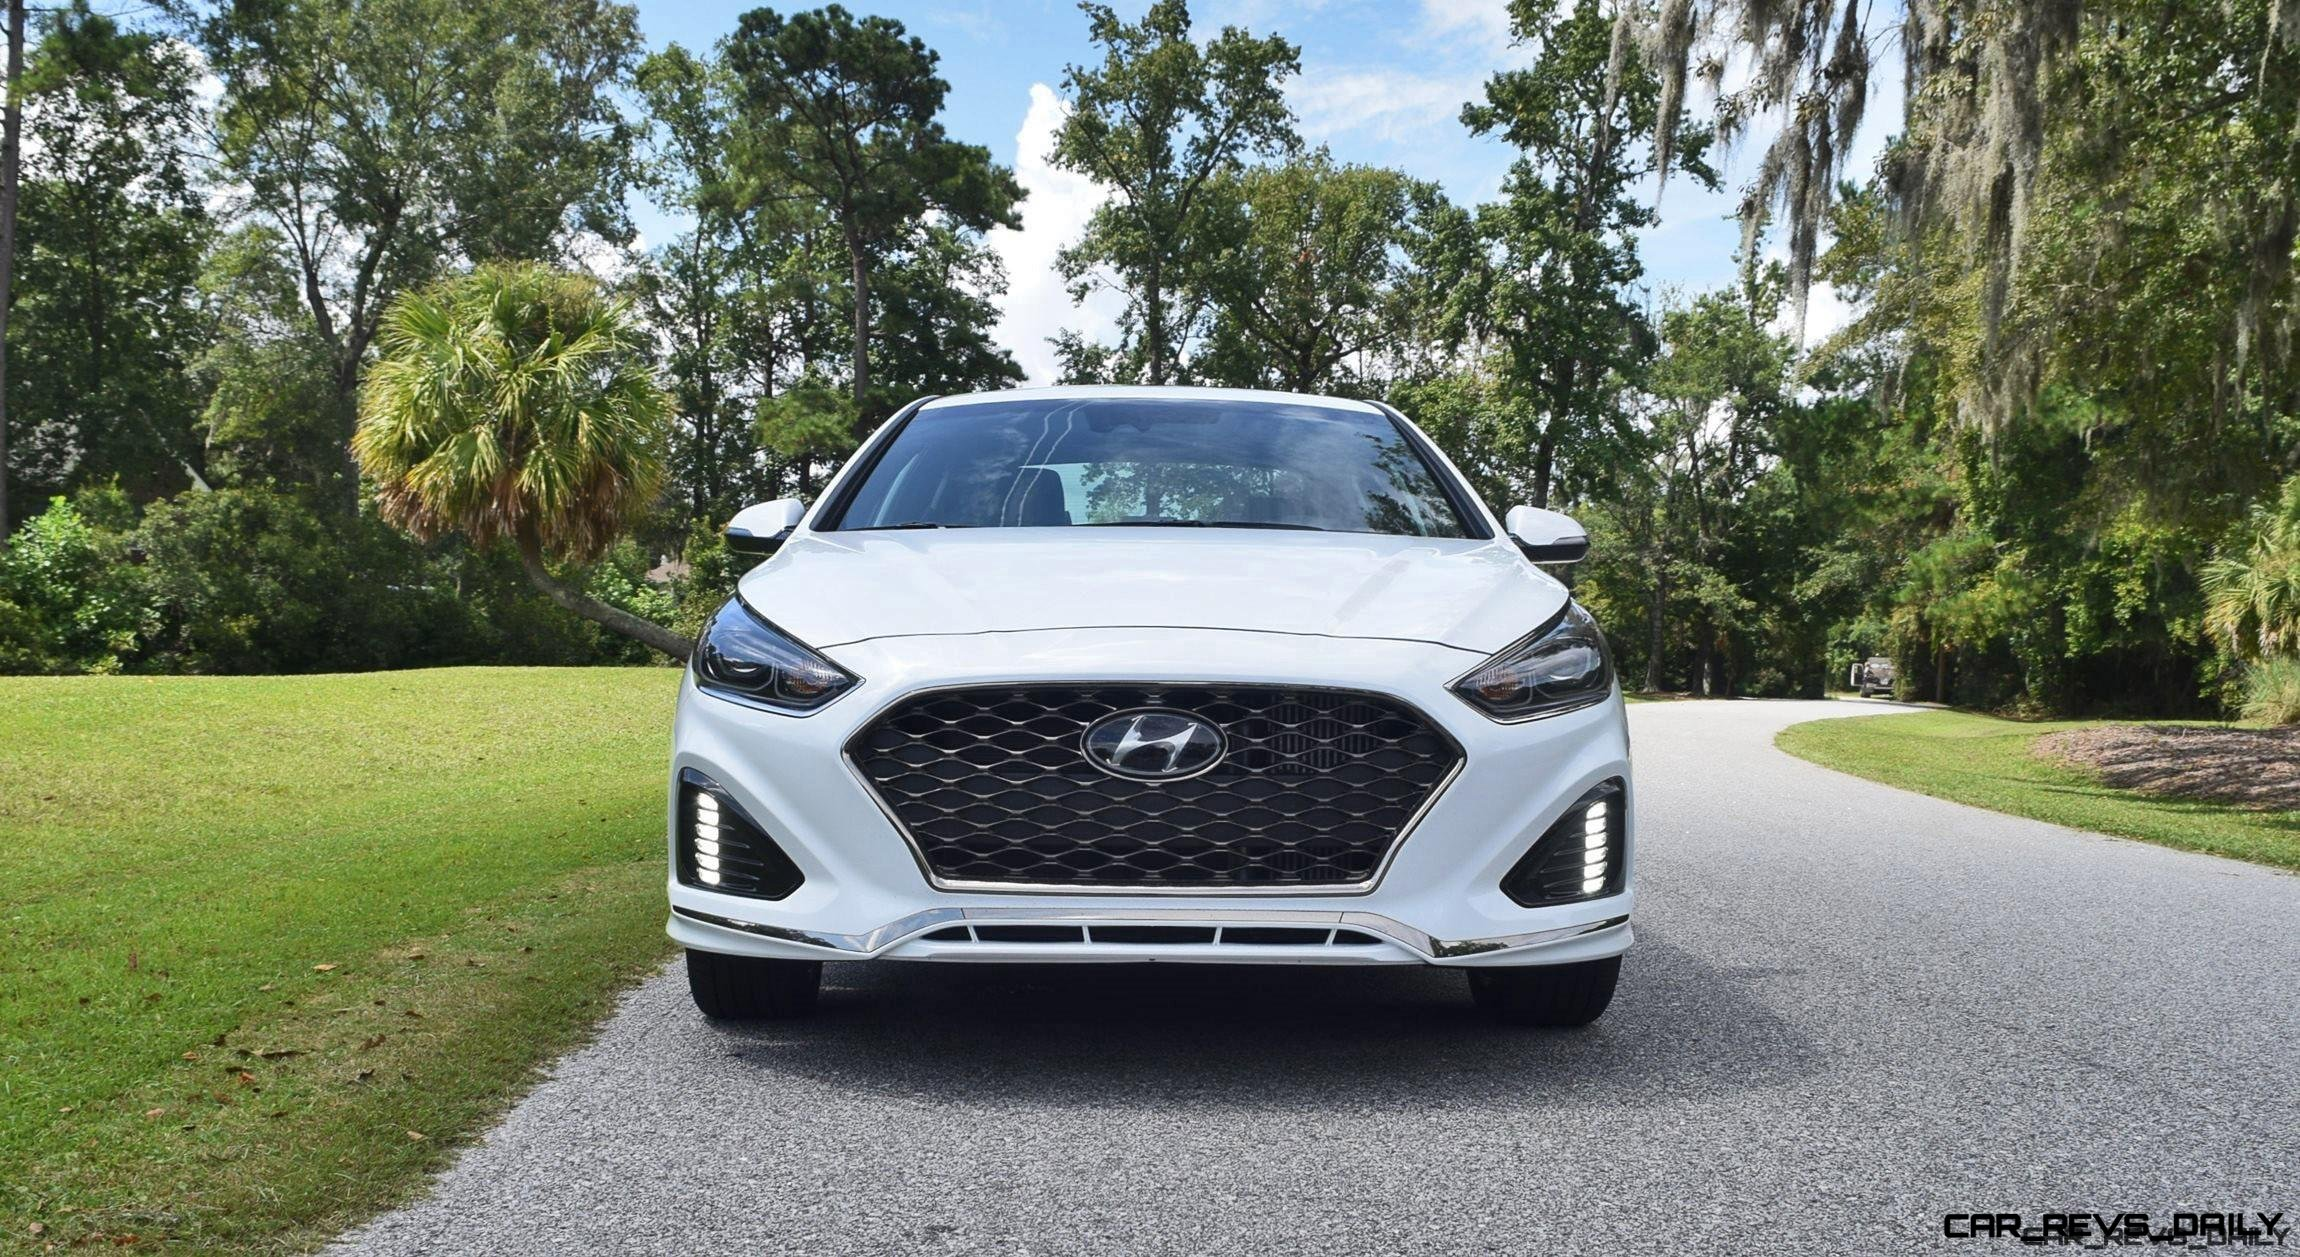 2018 Hyundai Sonata 2.0T - First Drive Review w/ Video